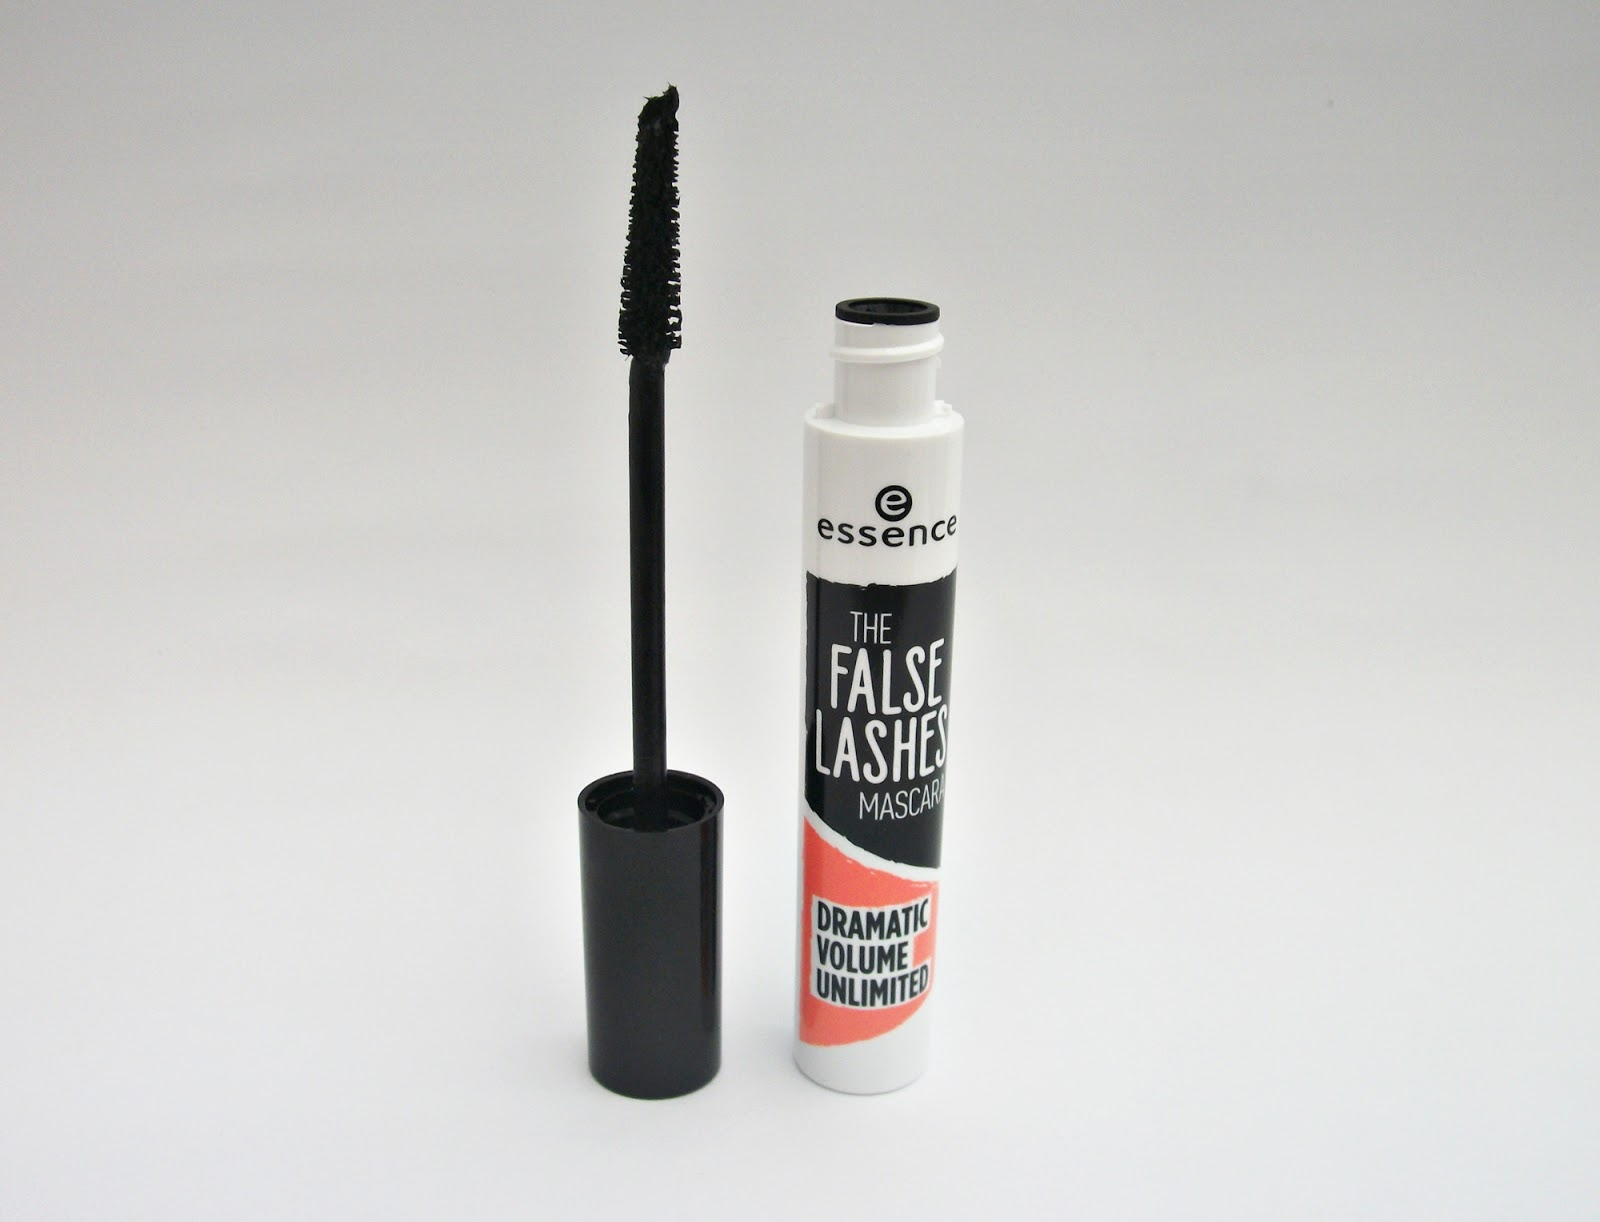 Máscara para cílios, The False Lashes, Essence